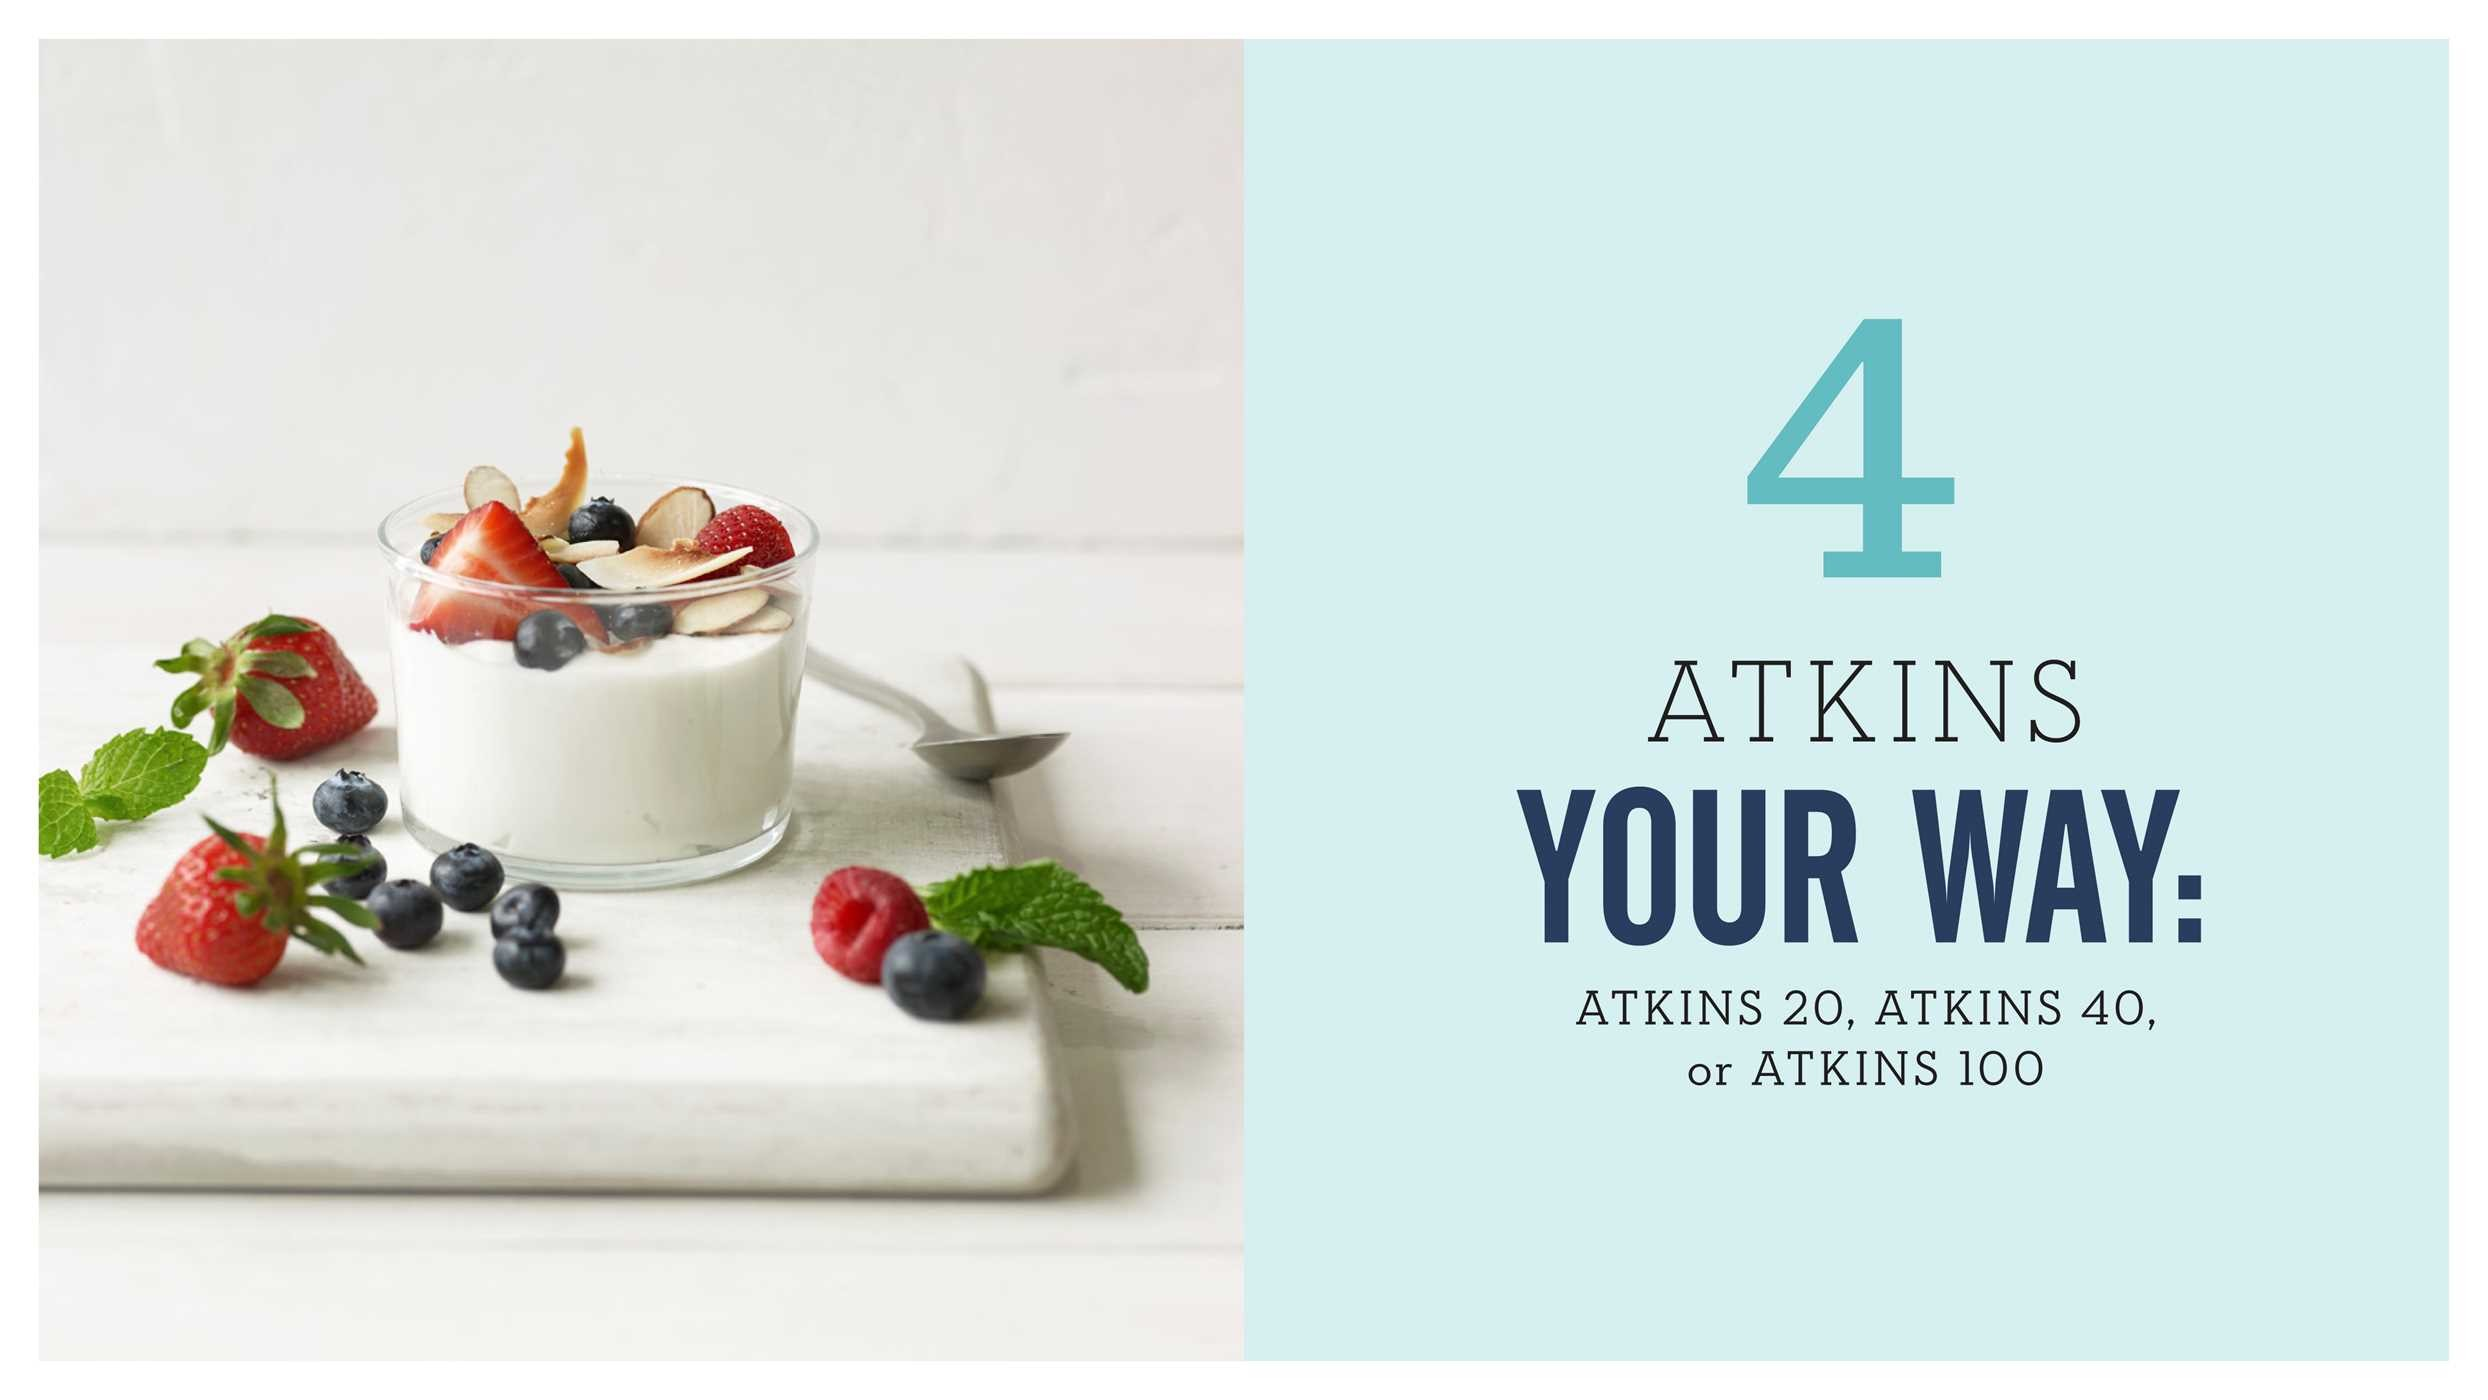 Atkins eat right not less 9781501175442.in05